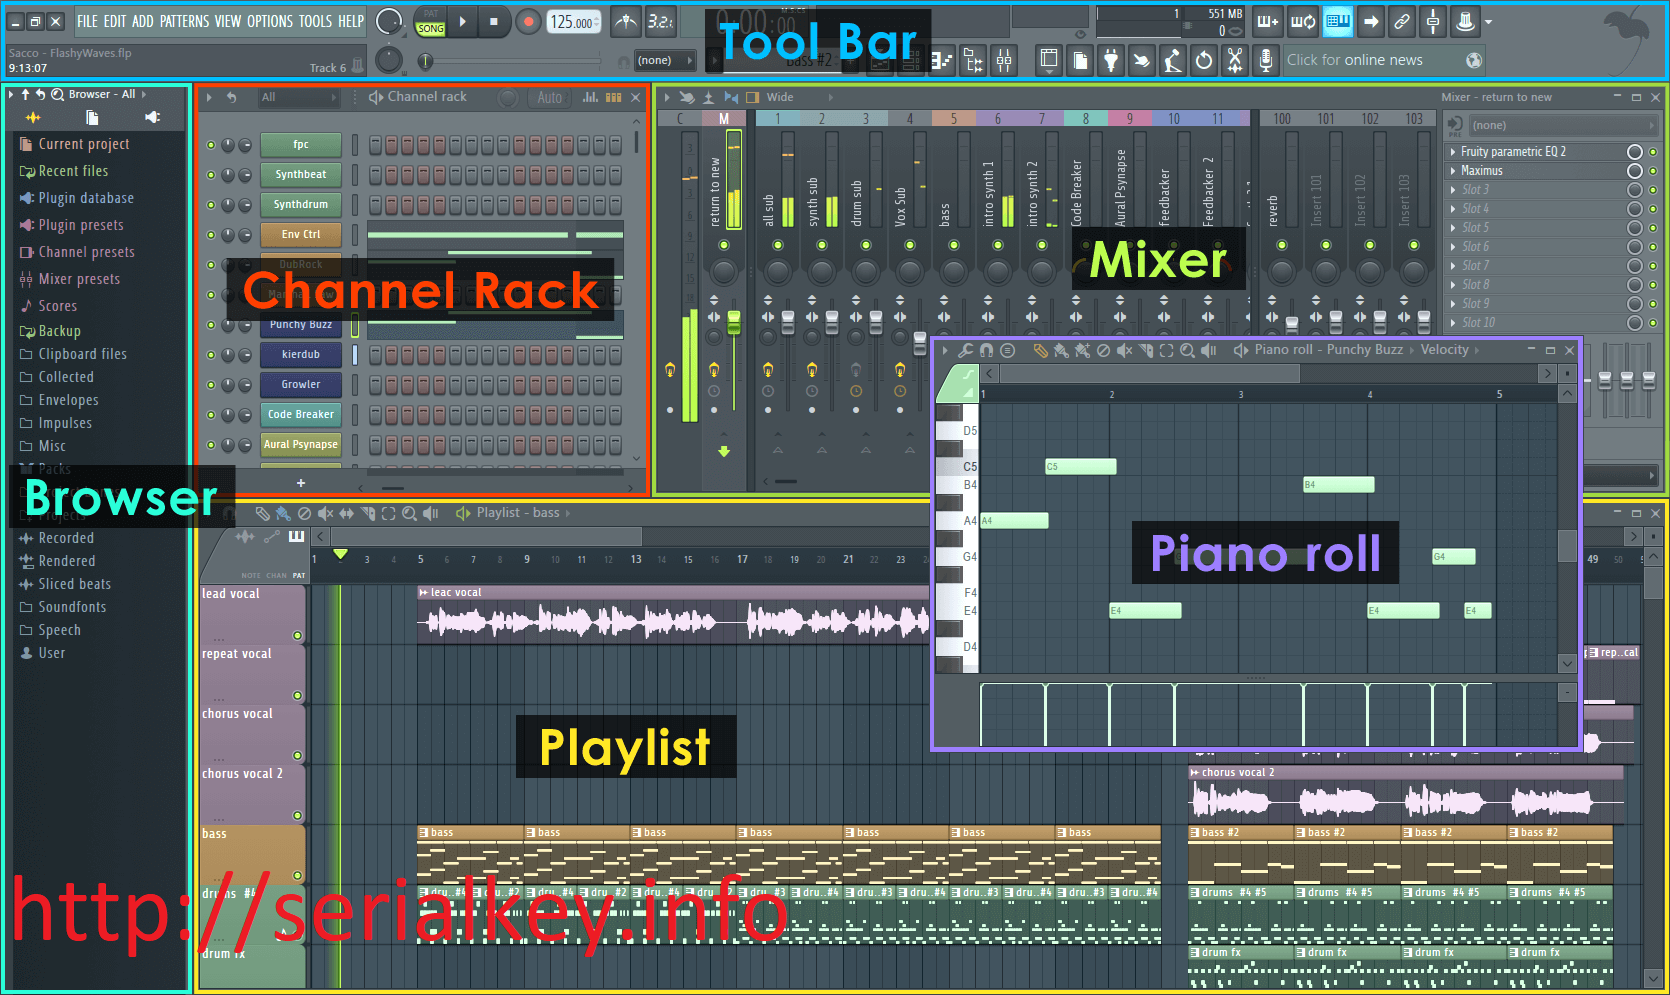 FL Studio 20.7.1 Crack + Registration Key Download Latest